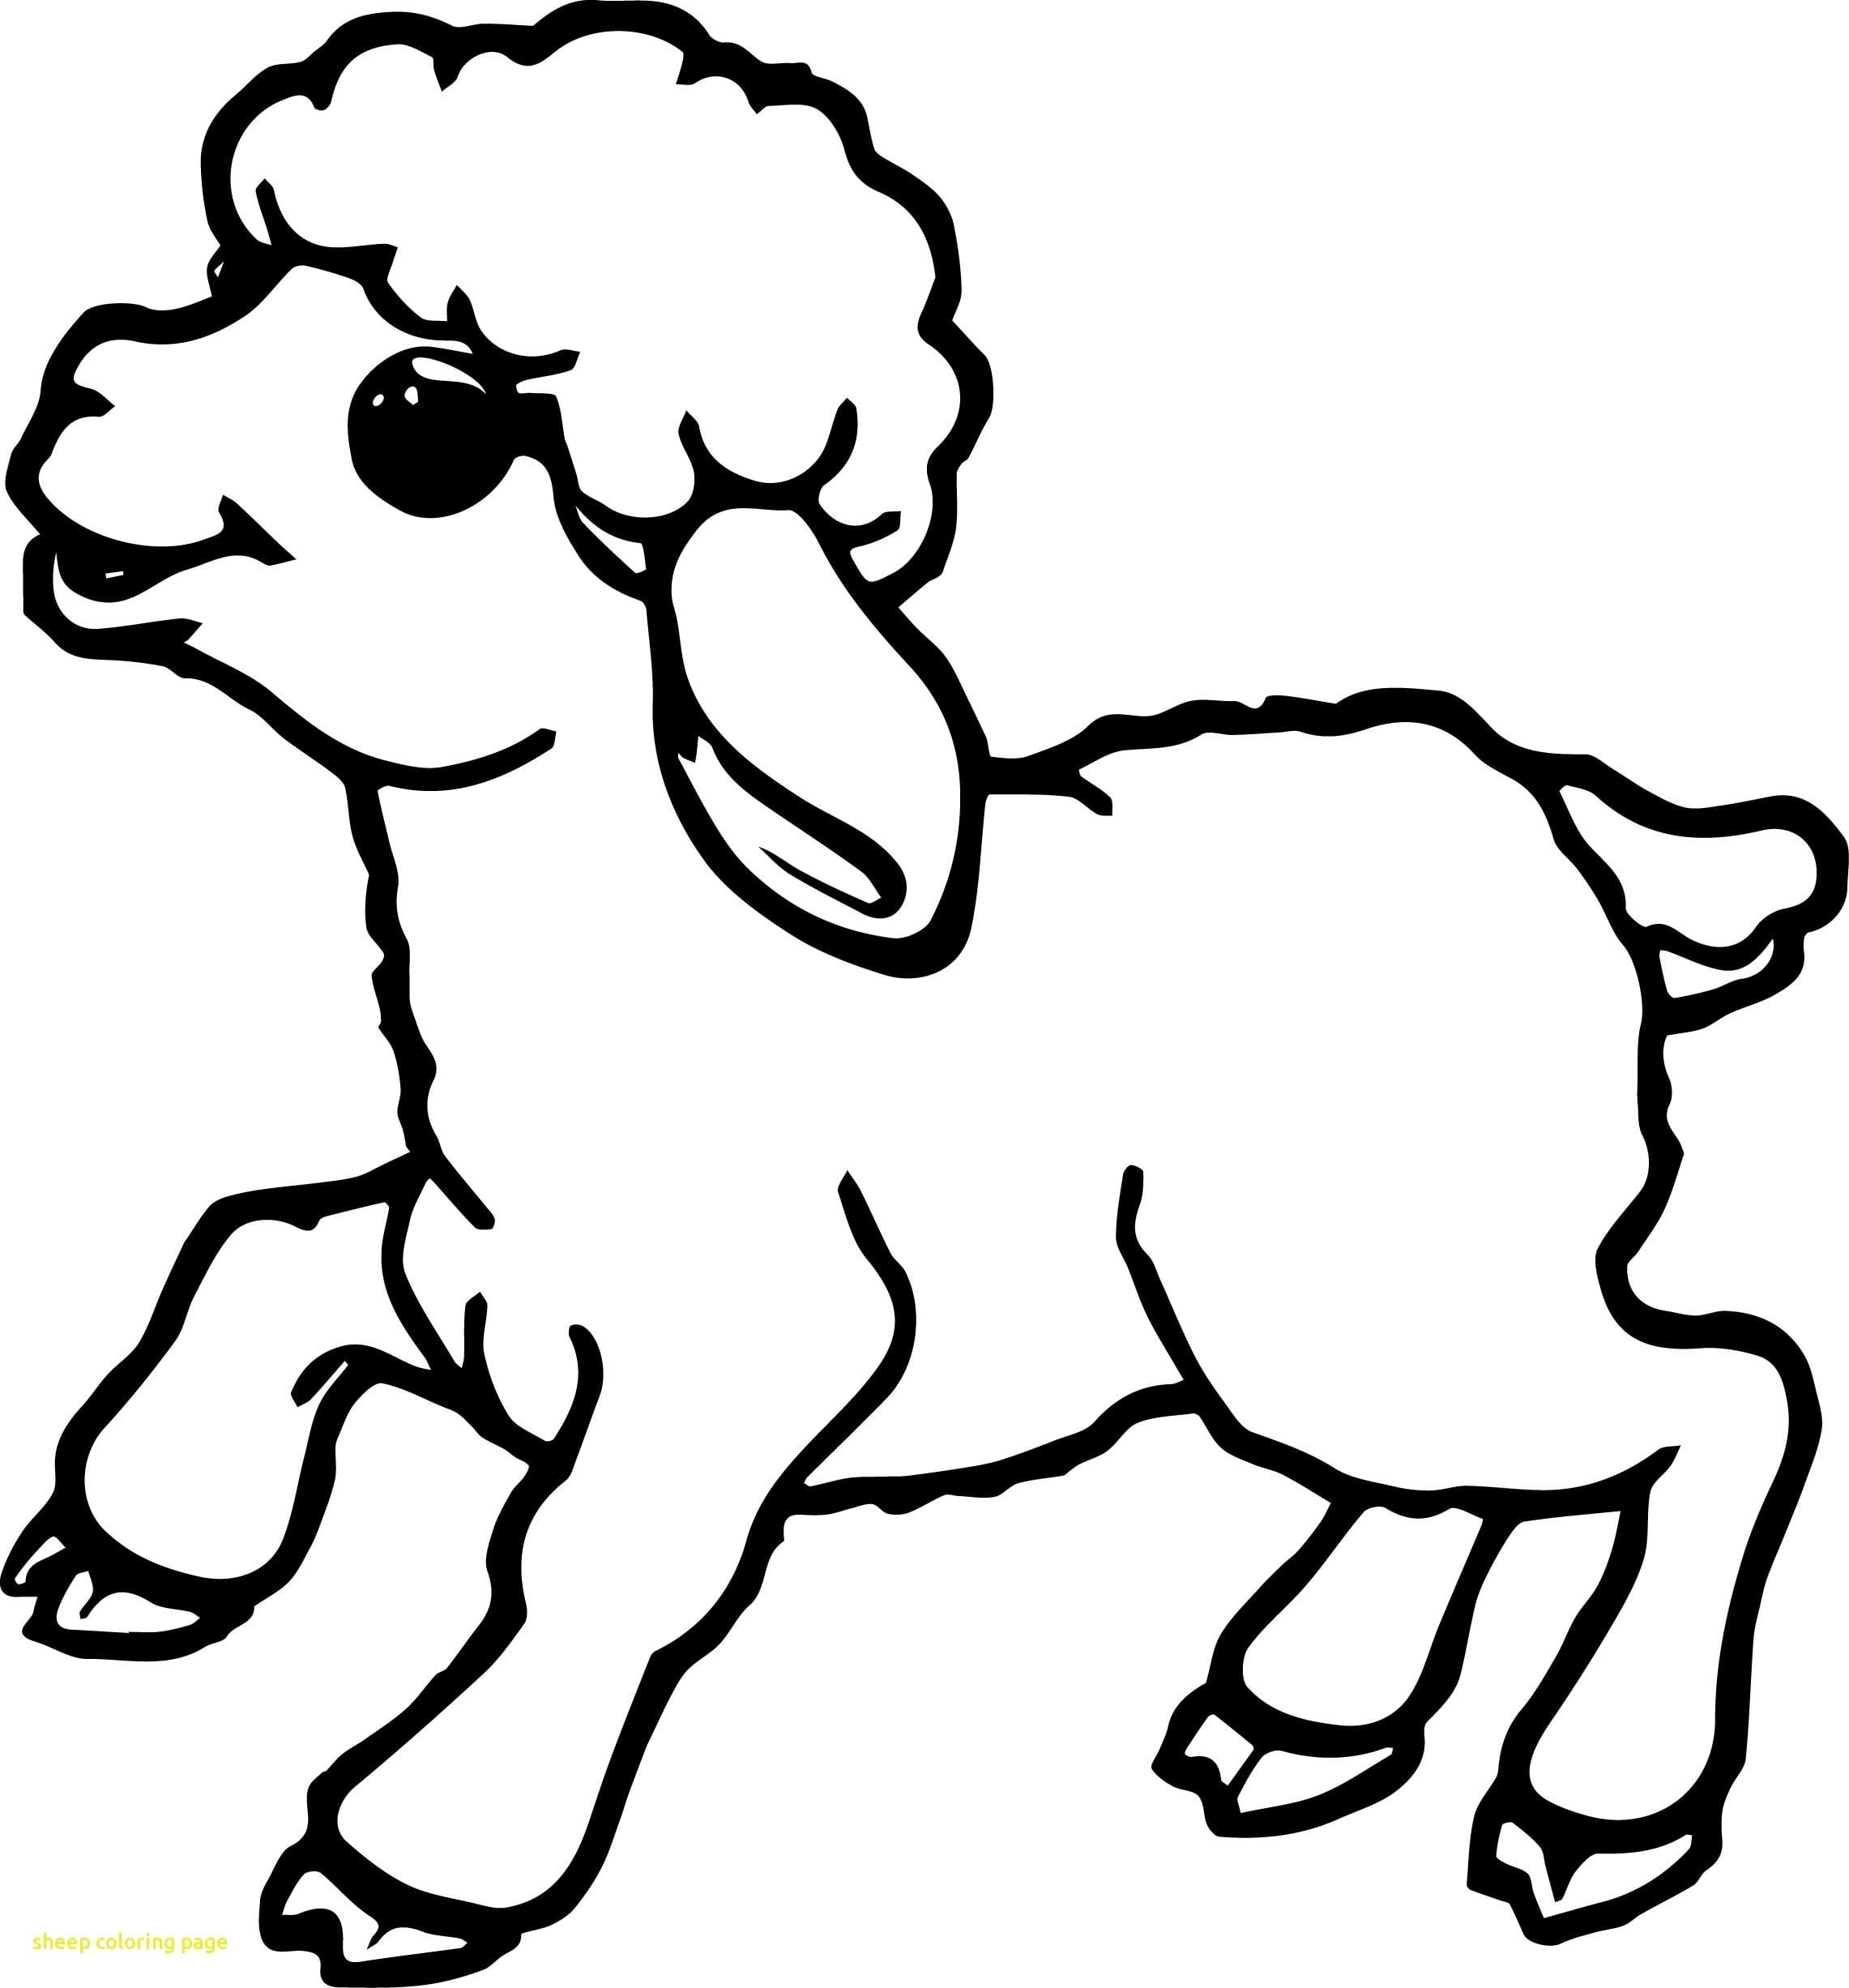 Sheep Coloring Page Unique Sheep Coloring Page With 30 Sheep Coloring Page Coloring Page Free Animal Coloring Pages Sheep Outline Sheep Drawing